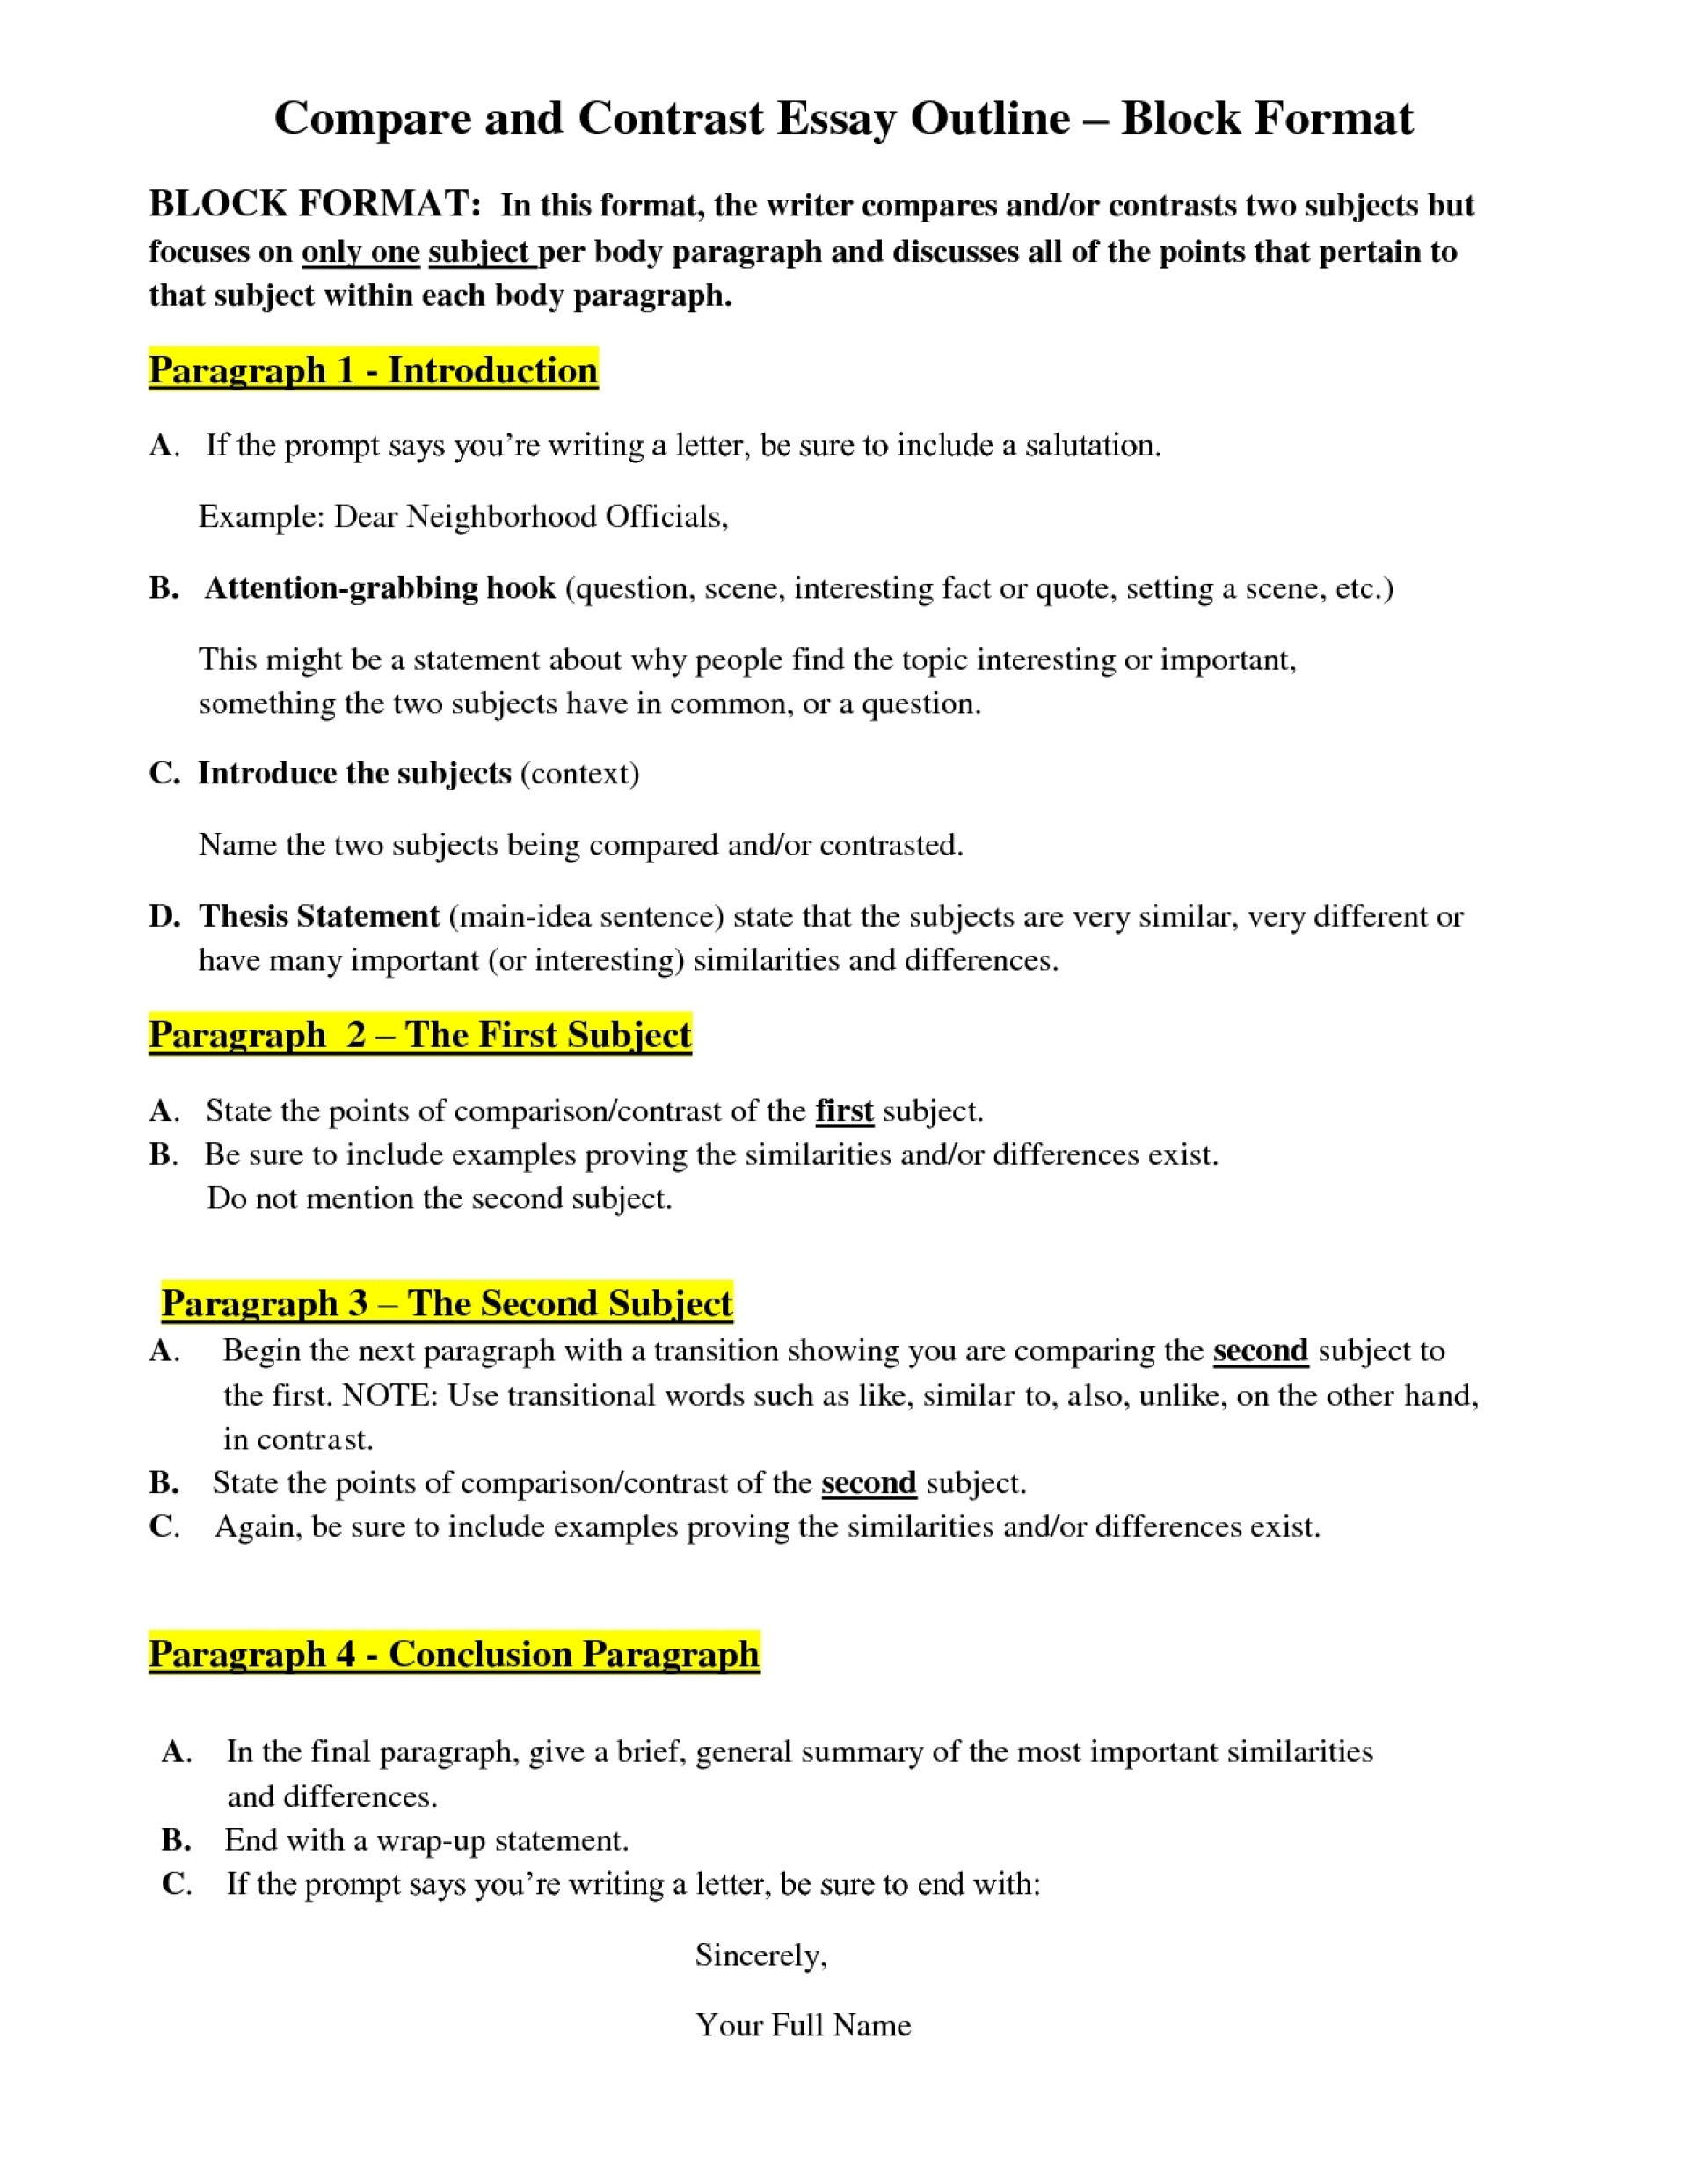 005 Comparison And Contrastsay Examples Point By Template Compare Outline Example Maxresdefault Creating Project Plan For Your Youtube How To An With Good Cover Letter Samples Imposing Contrast Essay Point-by-point 1920